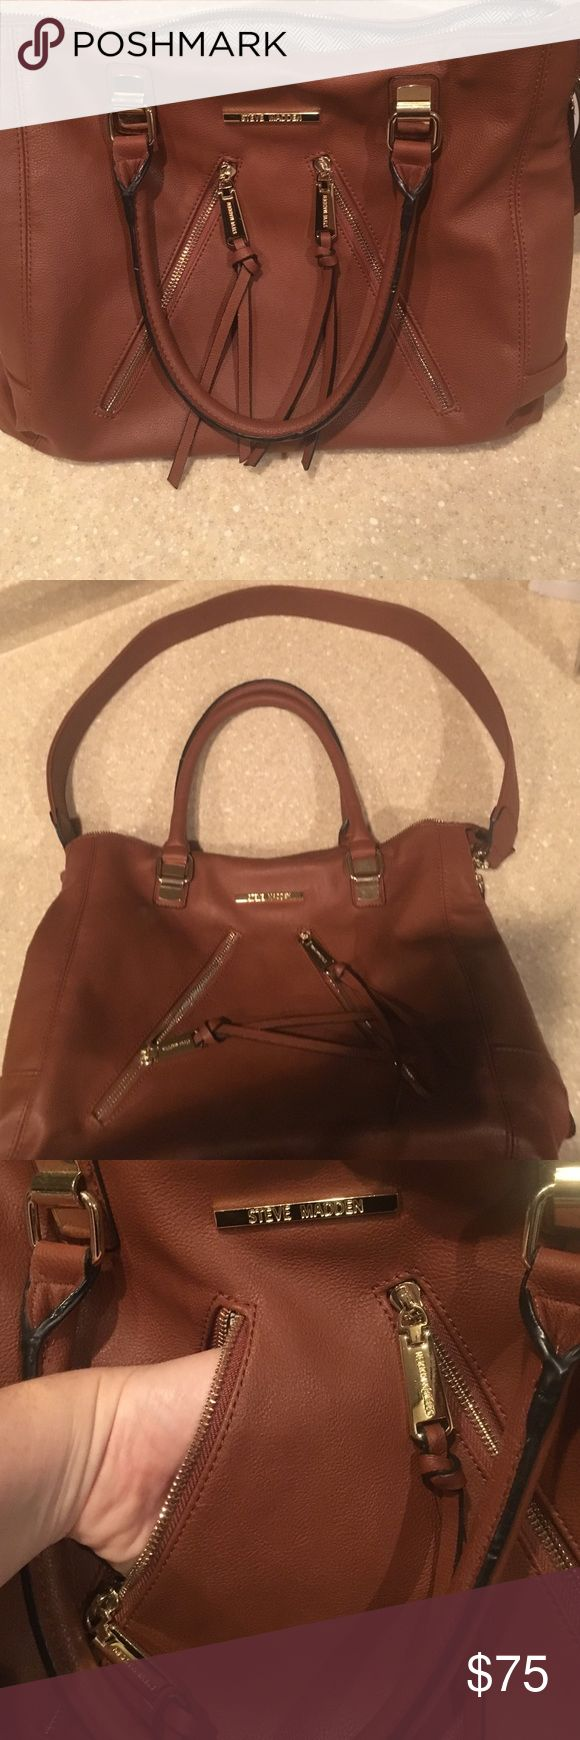 Steve Madden - Tan Purse Excellent condition Steve Madden bag. Lots of storage and looks fabulous. No rips, no tears, no stains. No blemishes. Steve Madden Bags Totes